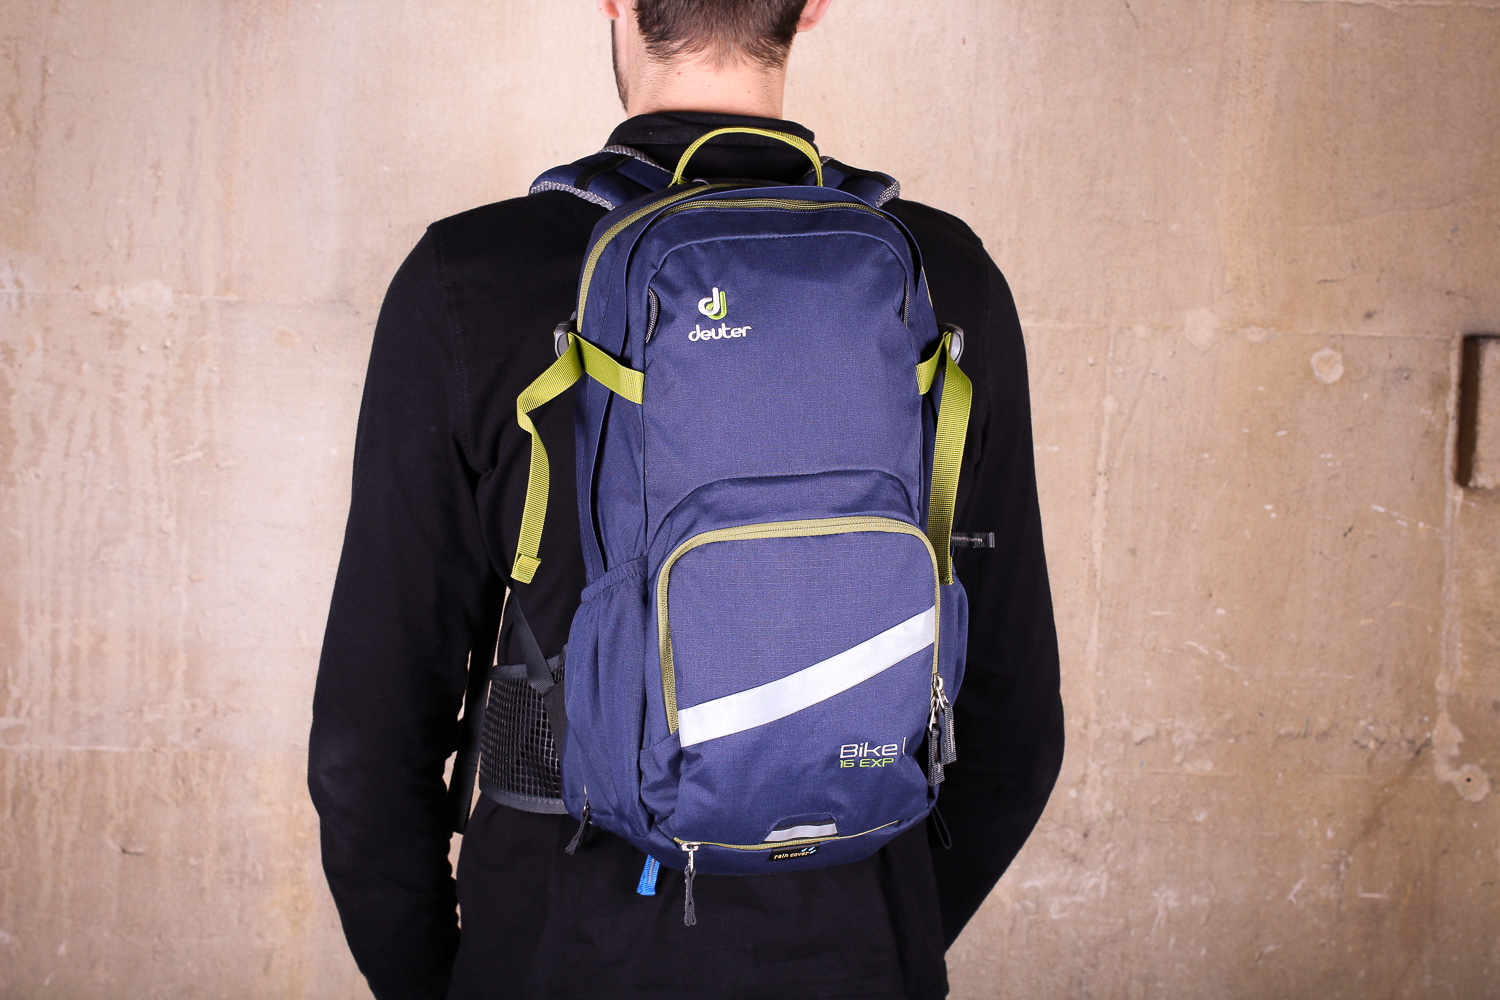 new high sale uk fast delivery Review: Deuter Bike One Air EXP 16 backpack | road.cc